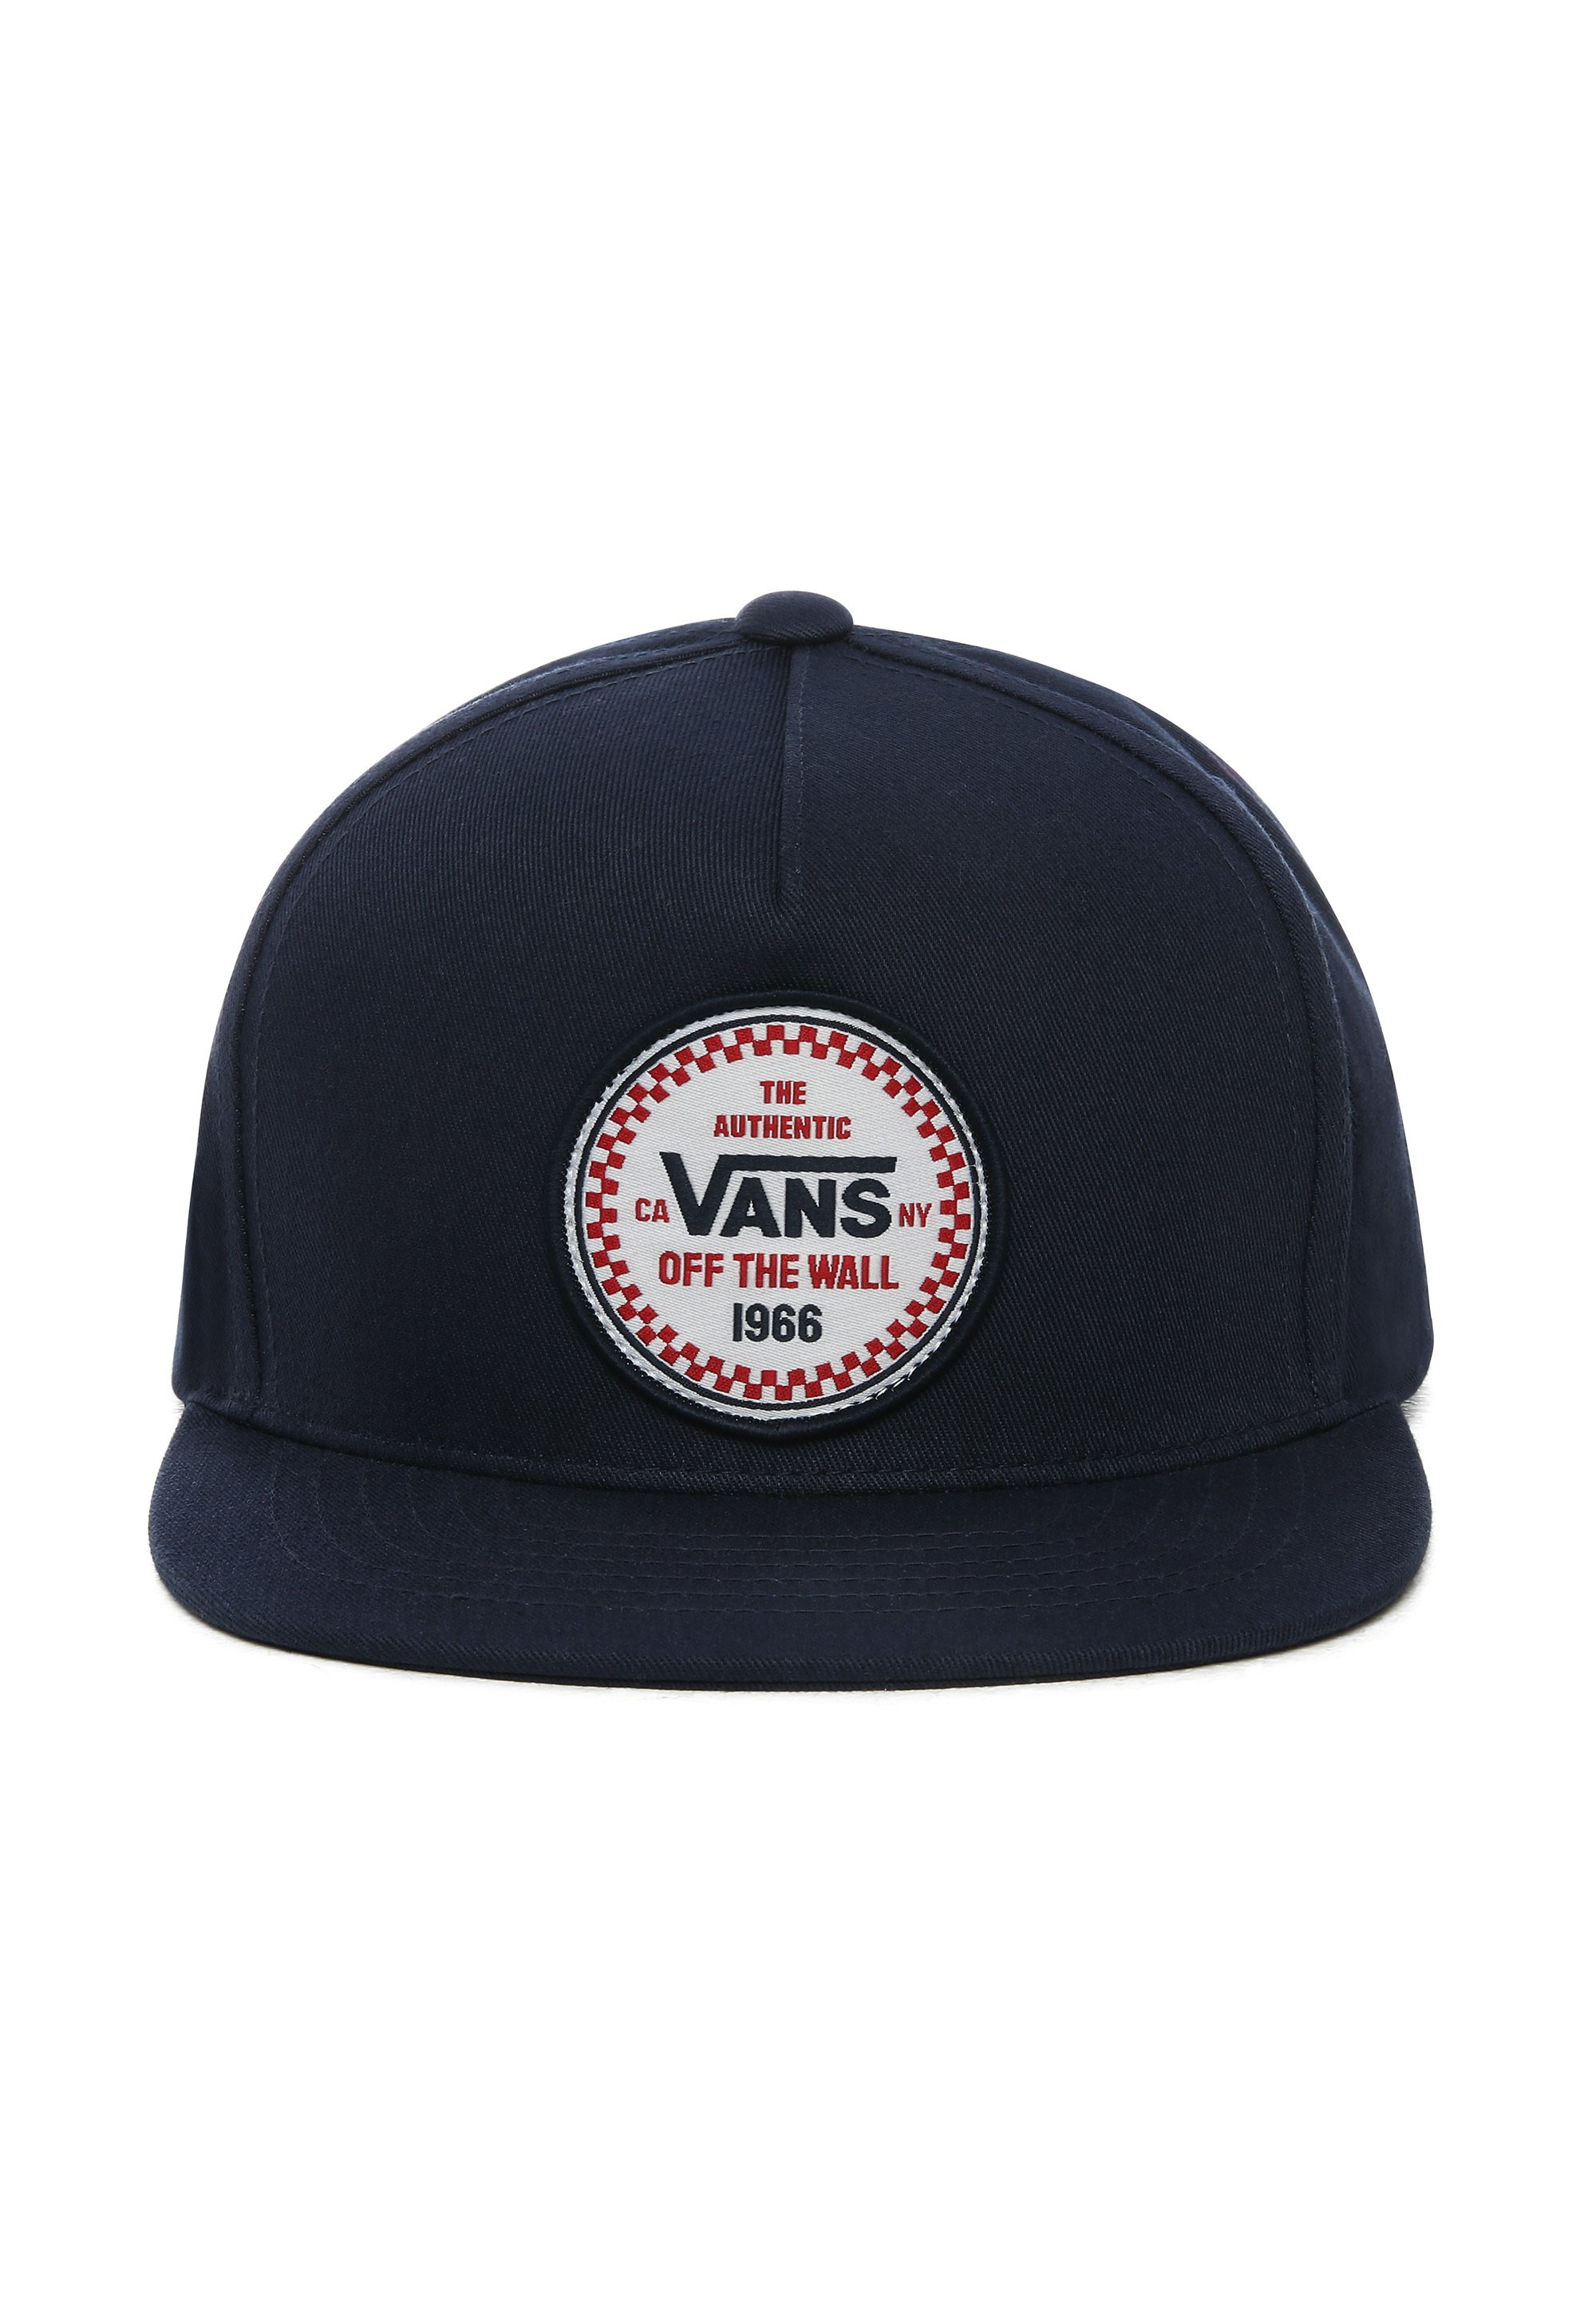 Homme BY CHECKER - Casquette